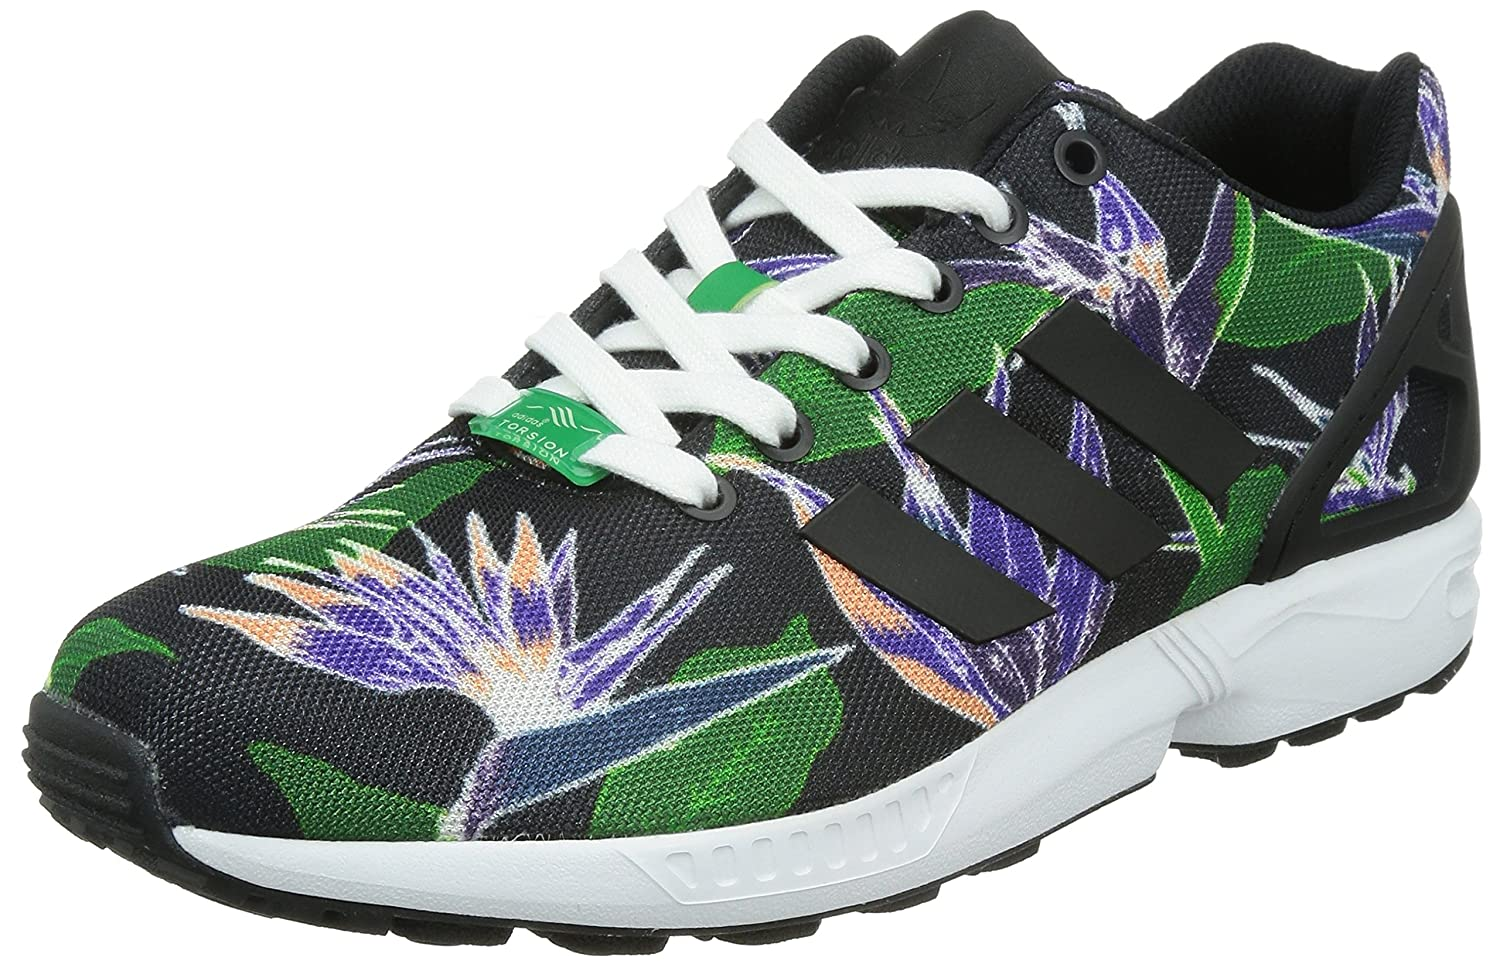 free shipping 22308 d46d7 adidas Originals Mens Torsion ZX Flux Trainers